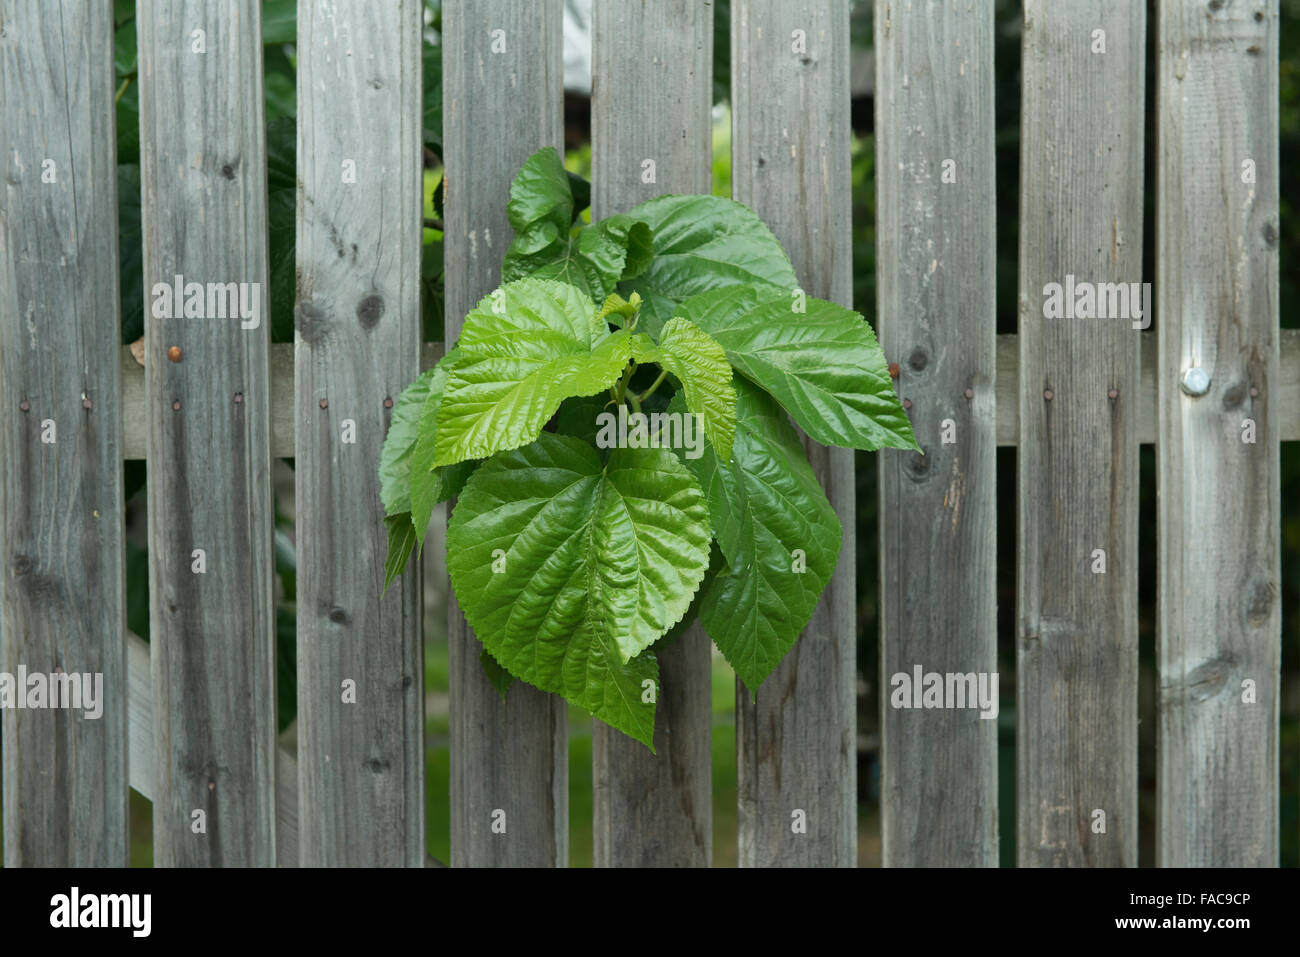 plant which passes through a palisade - Stock Image